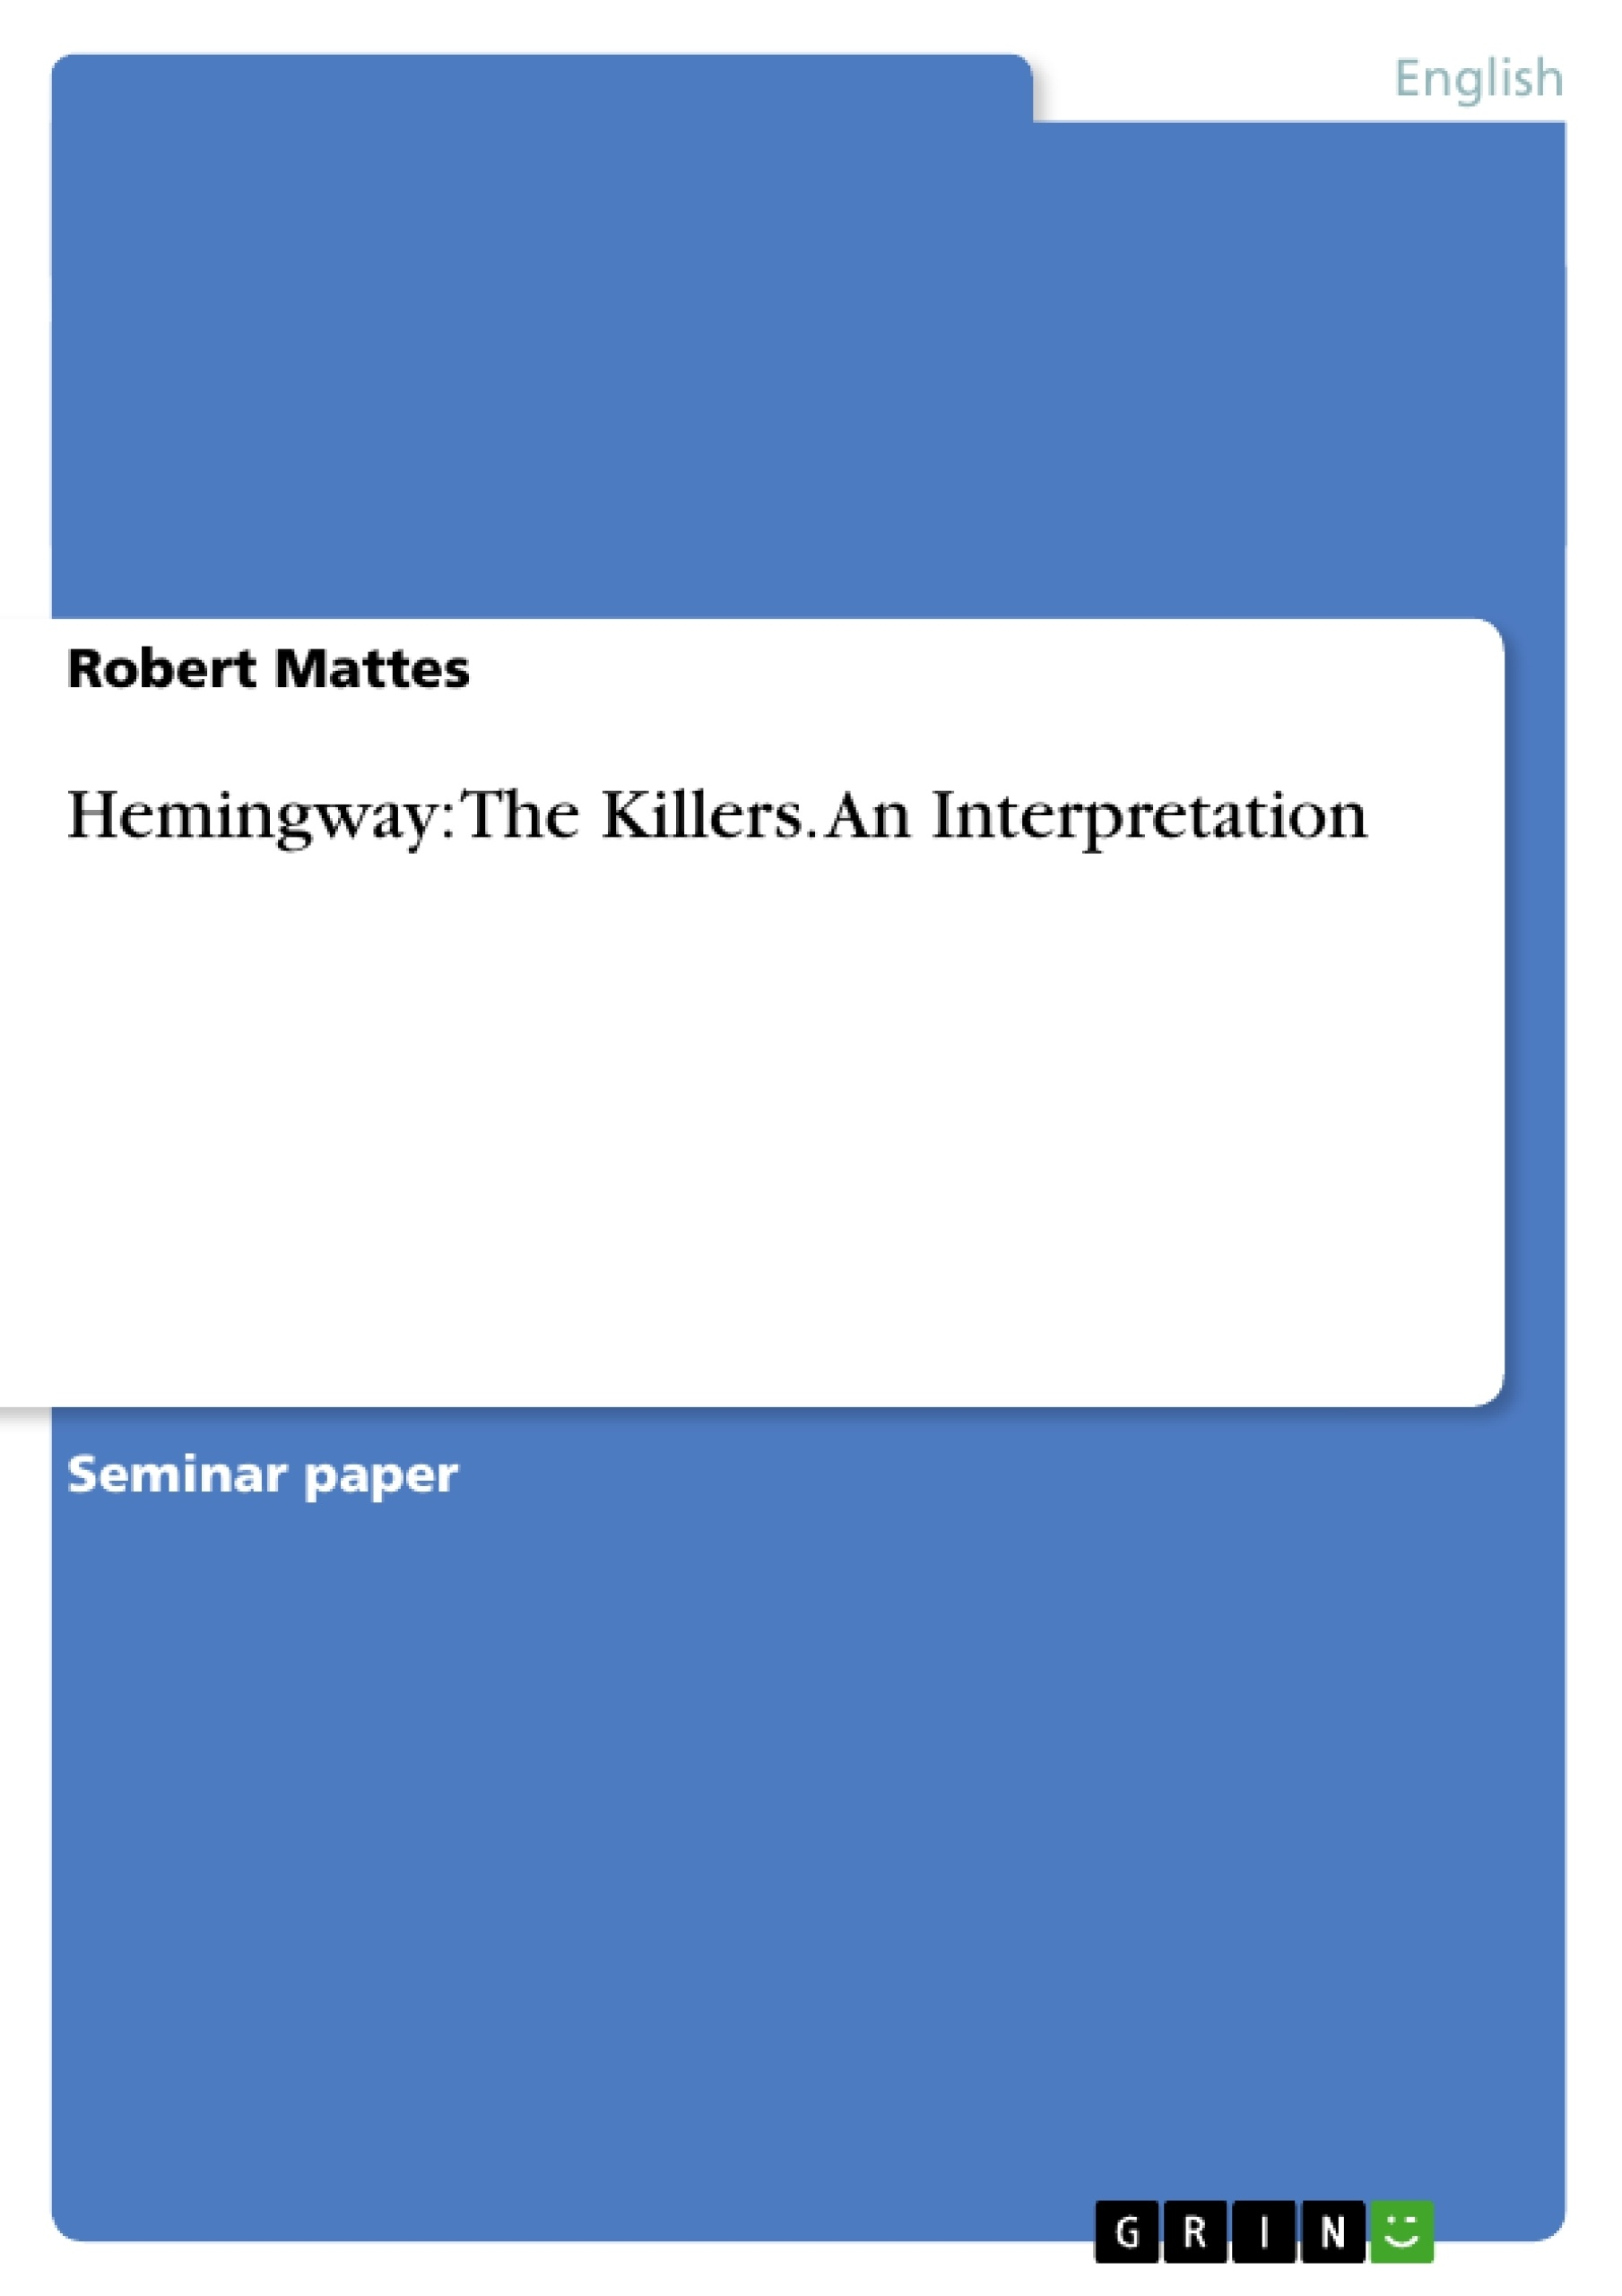 Title: Hemingway: The Killers. An Interpretation